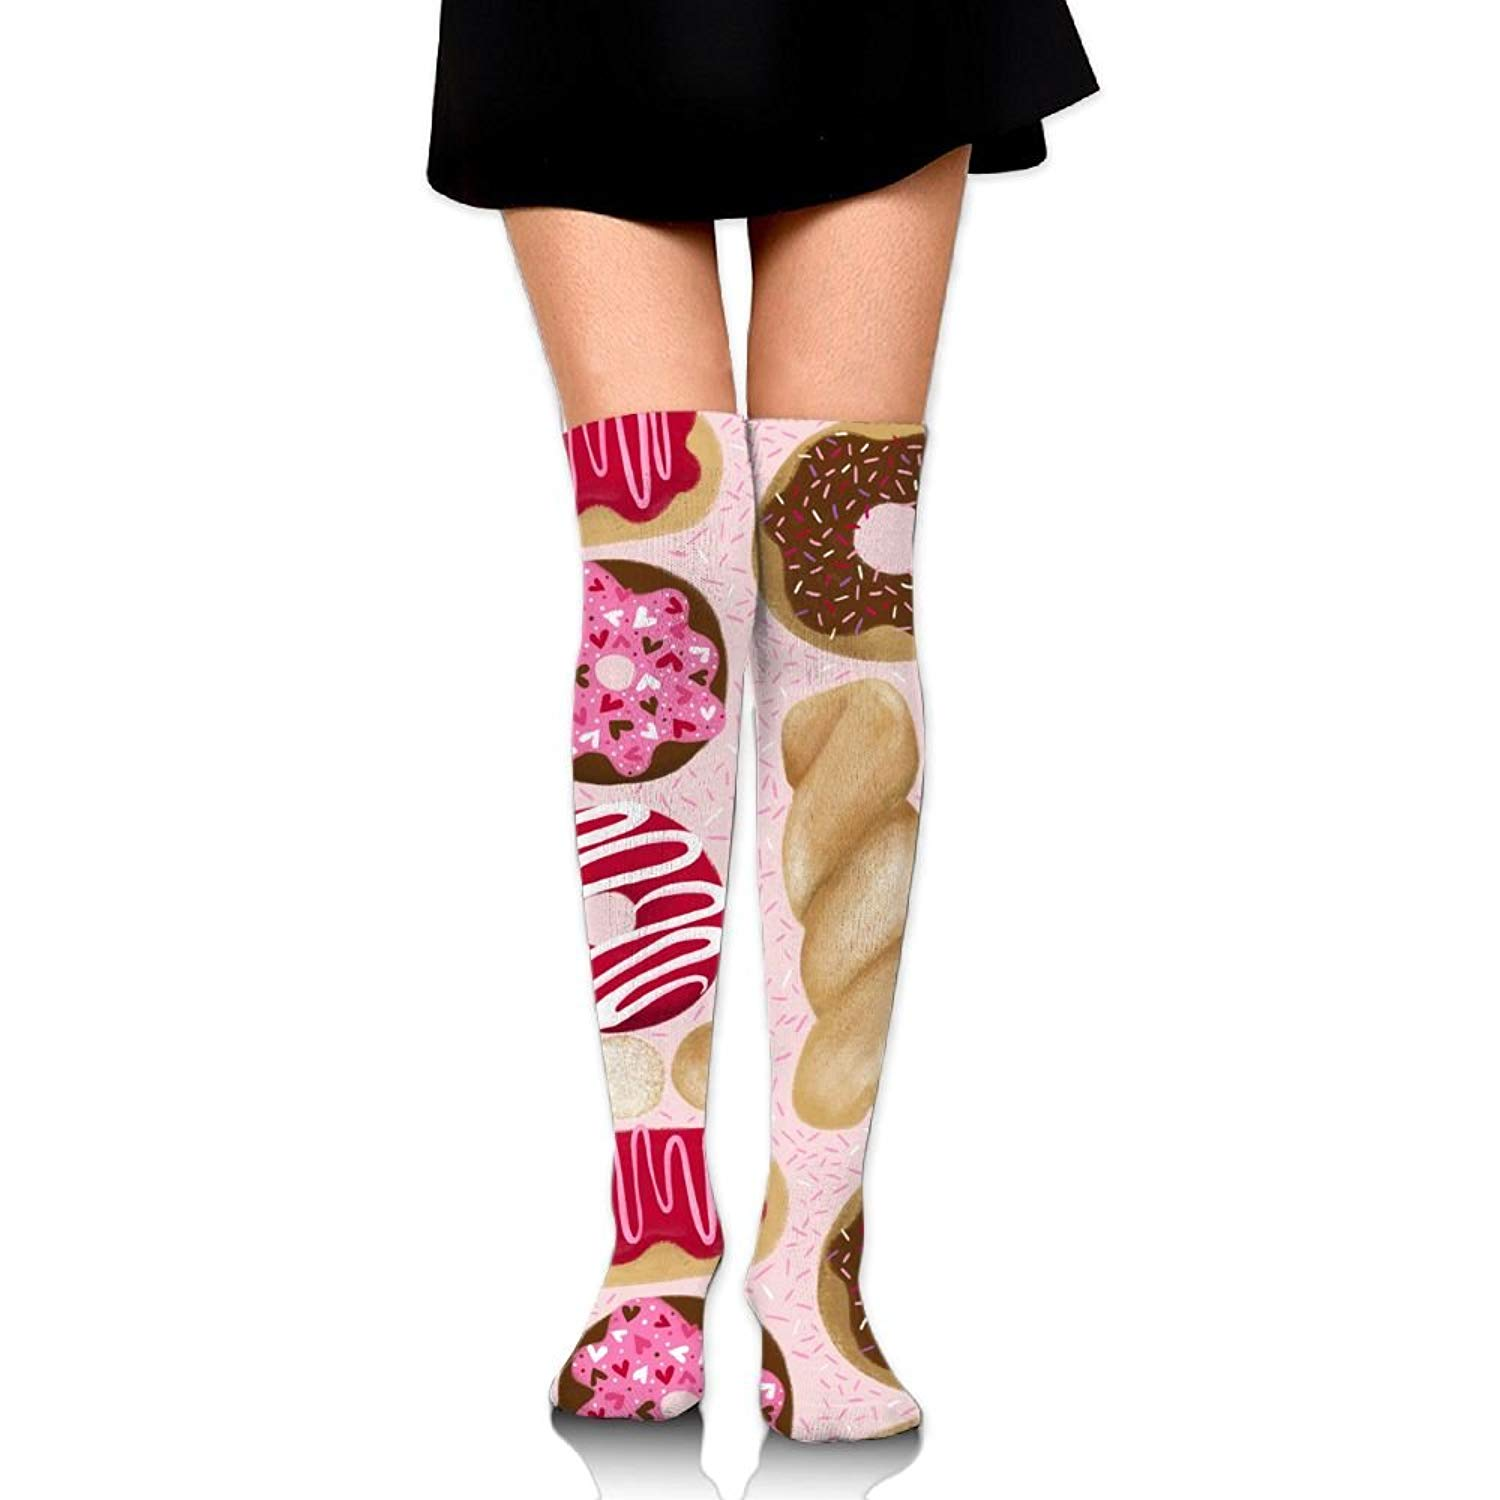 Zaqxsw Doughnut Women Unique Thigh High Socks Long Socks For Teen Girls